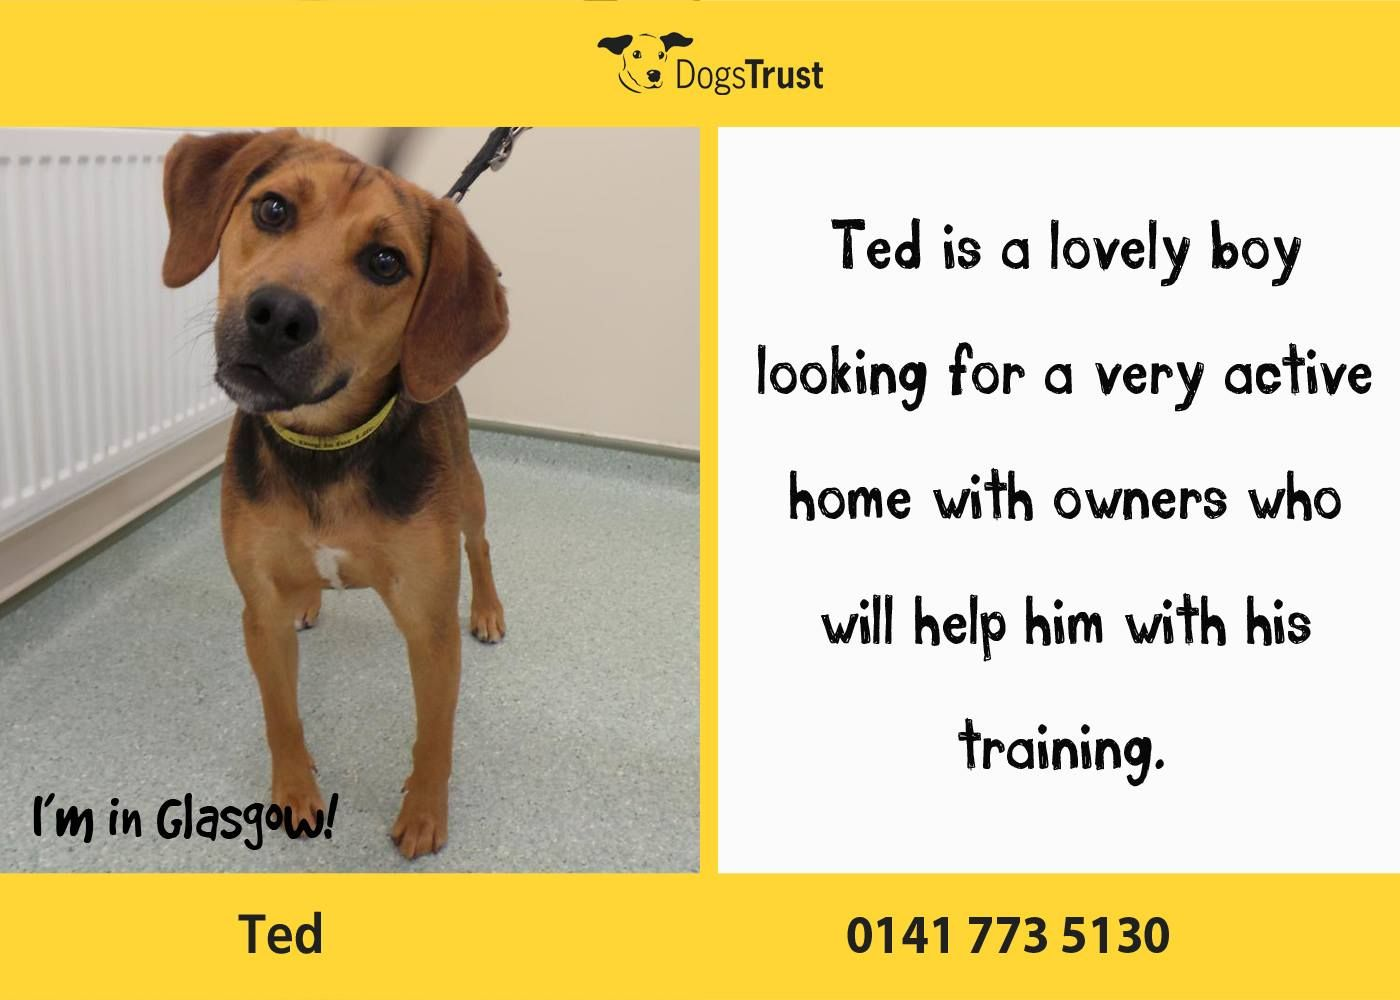 Ted At Dogs Trust Glasgow Is A Lovely Boy His Full Of Beans And Energy He Loves To Be On The Go All The Time Learning New Things And Going